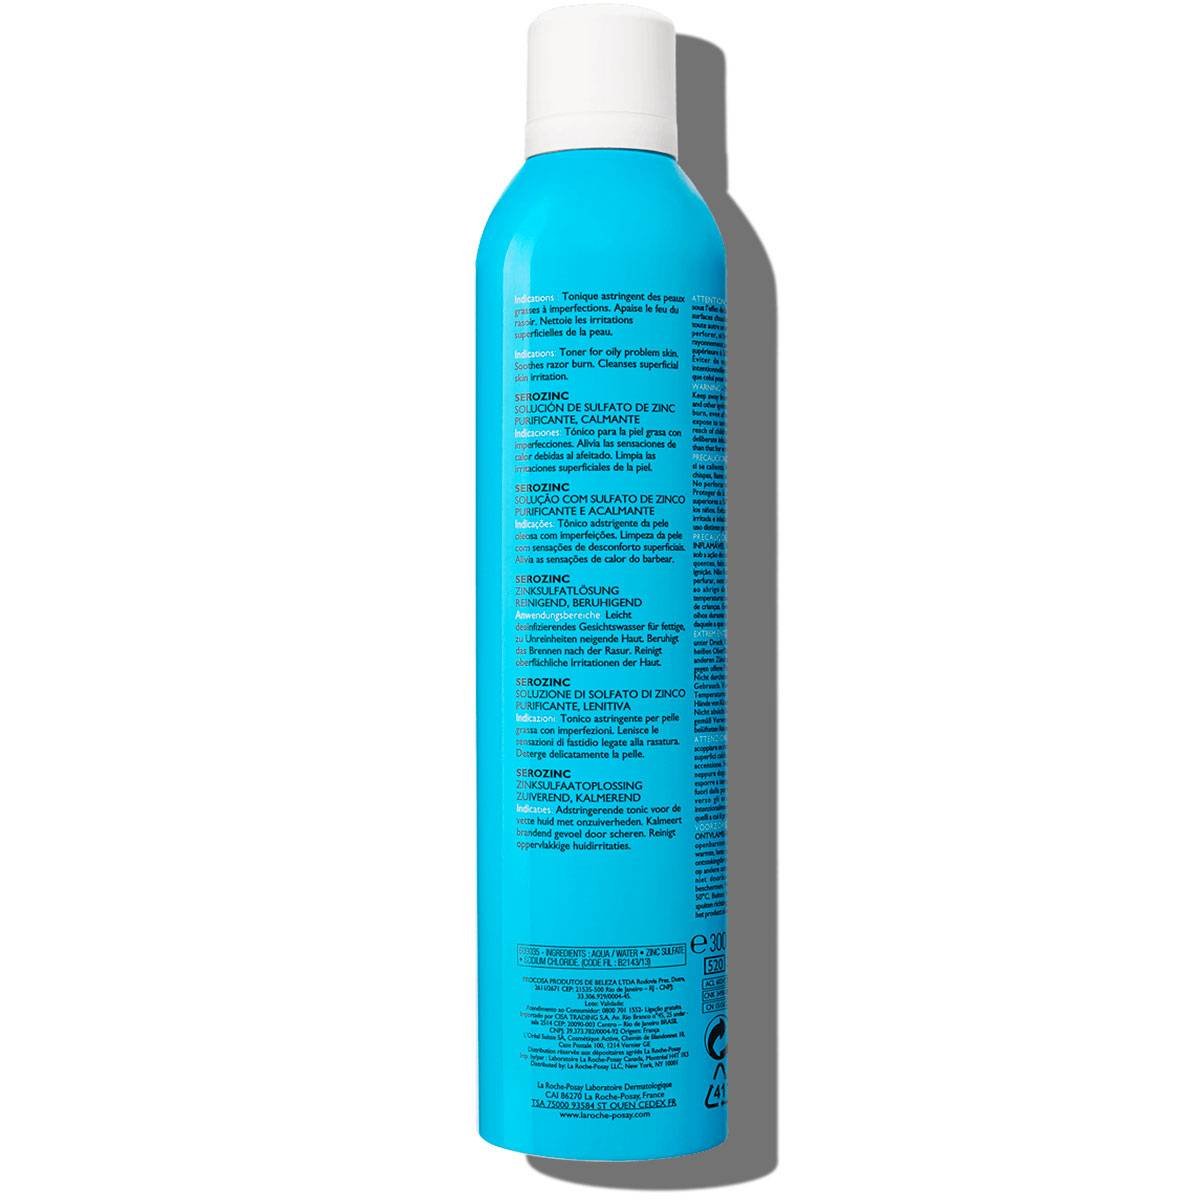 La Roche Posay ProductPage Serozinc Spray Zinc 300ml 3337875565783 Bac